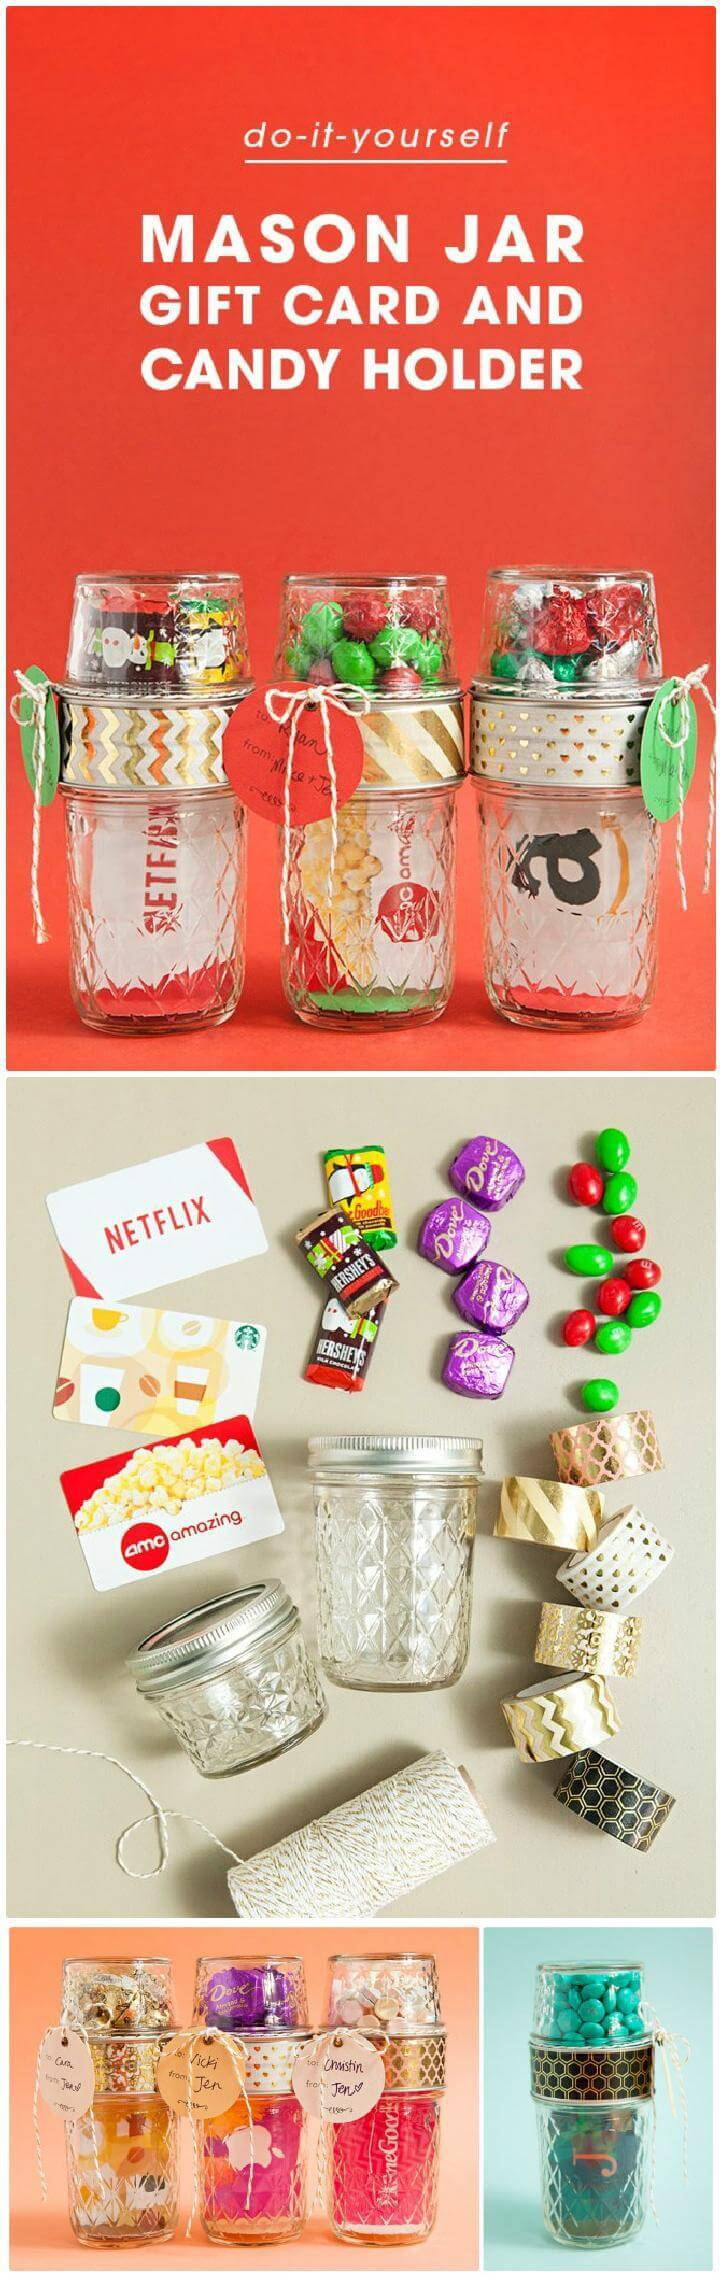 160 diy mason jar crafts and gift ideas diy crafts diy homemade mason jar gift card and candy holders solutioingenieria Image collections